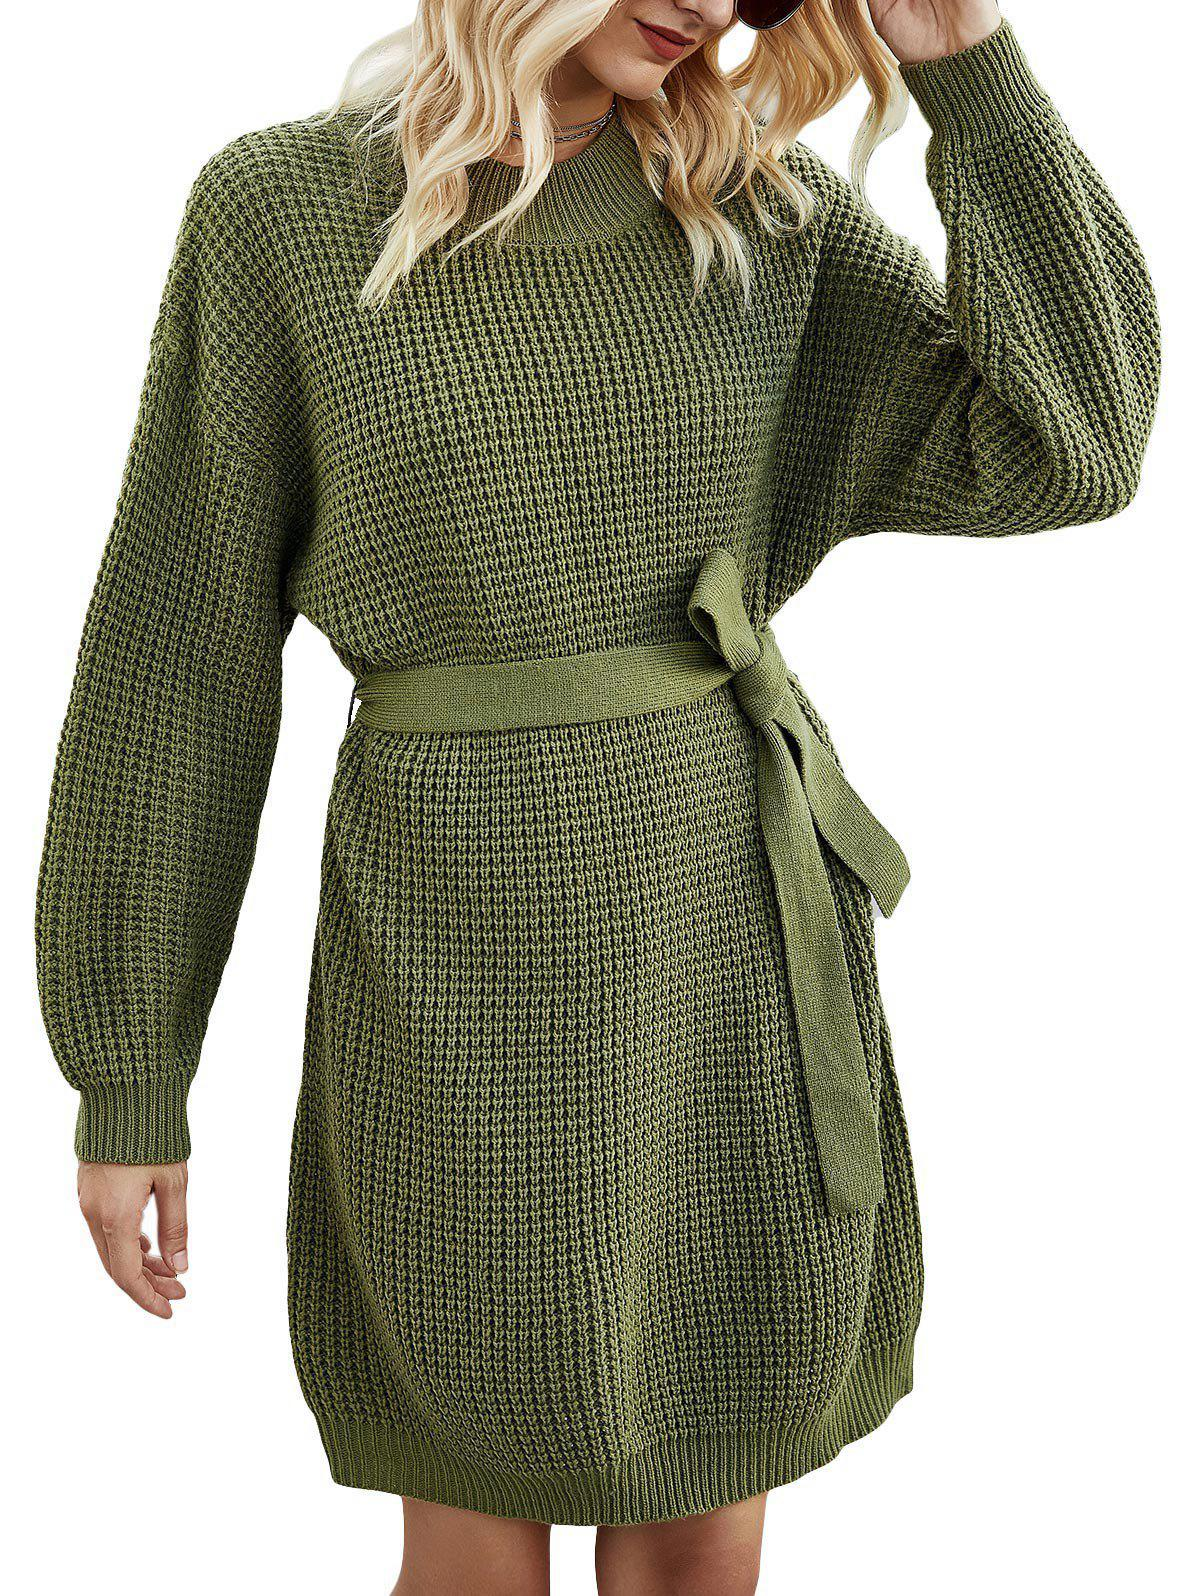 New Crew Neck Belted Jumper Dress